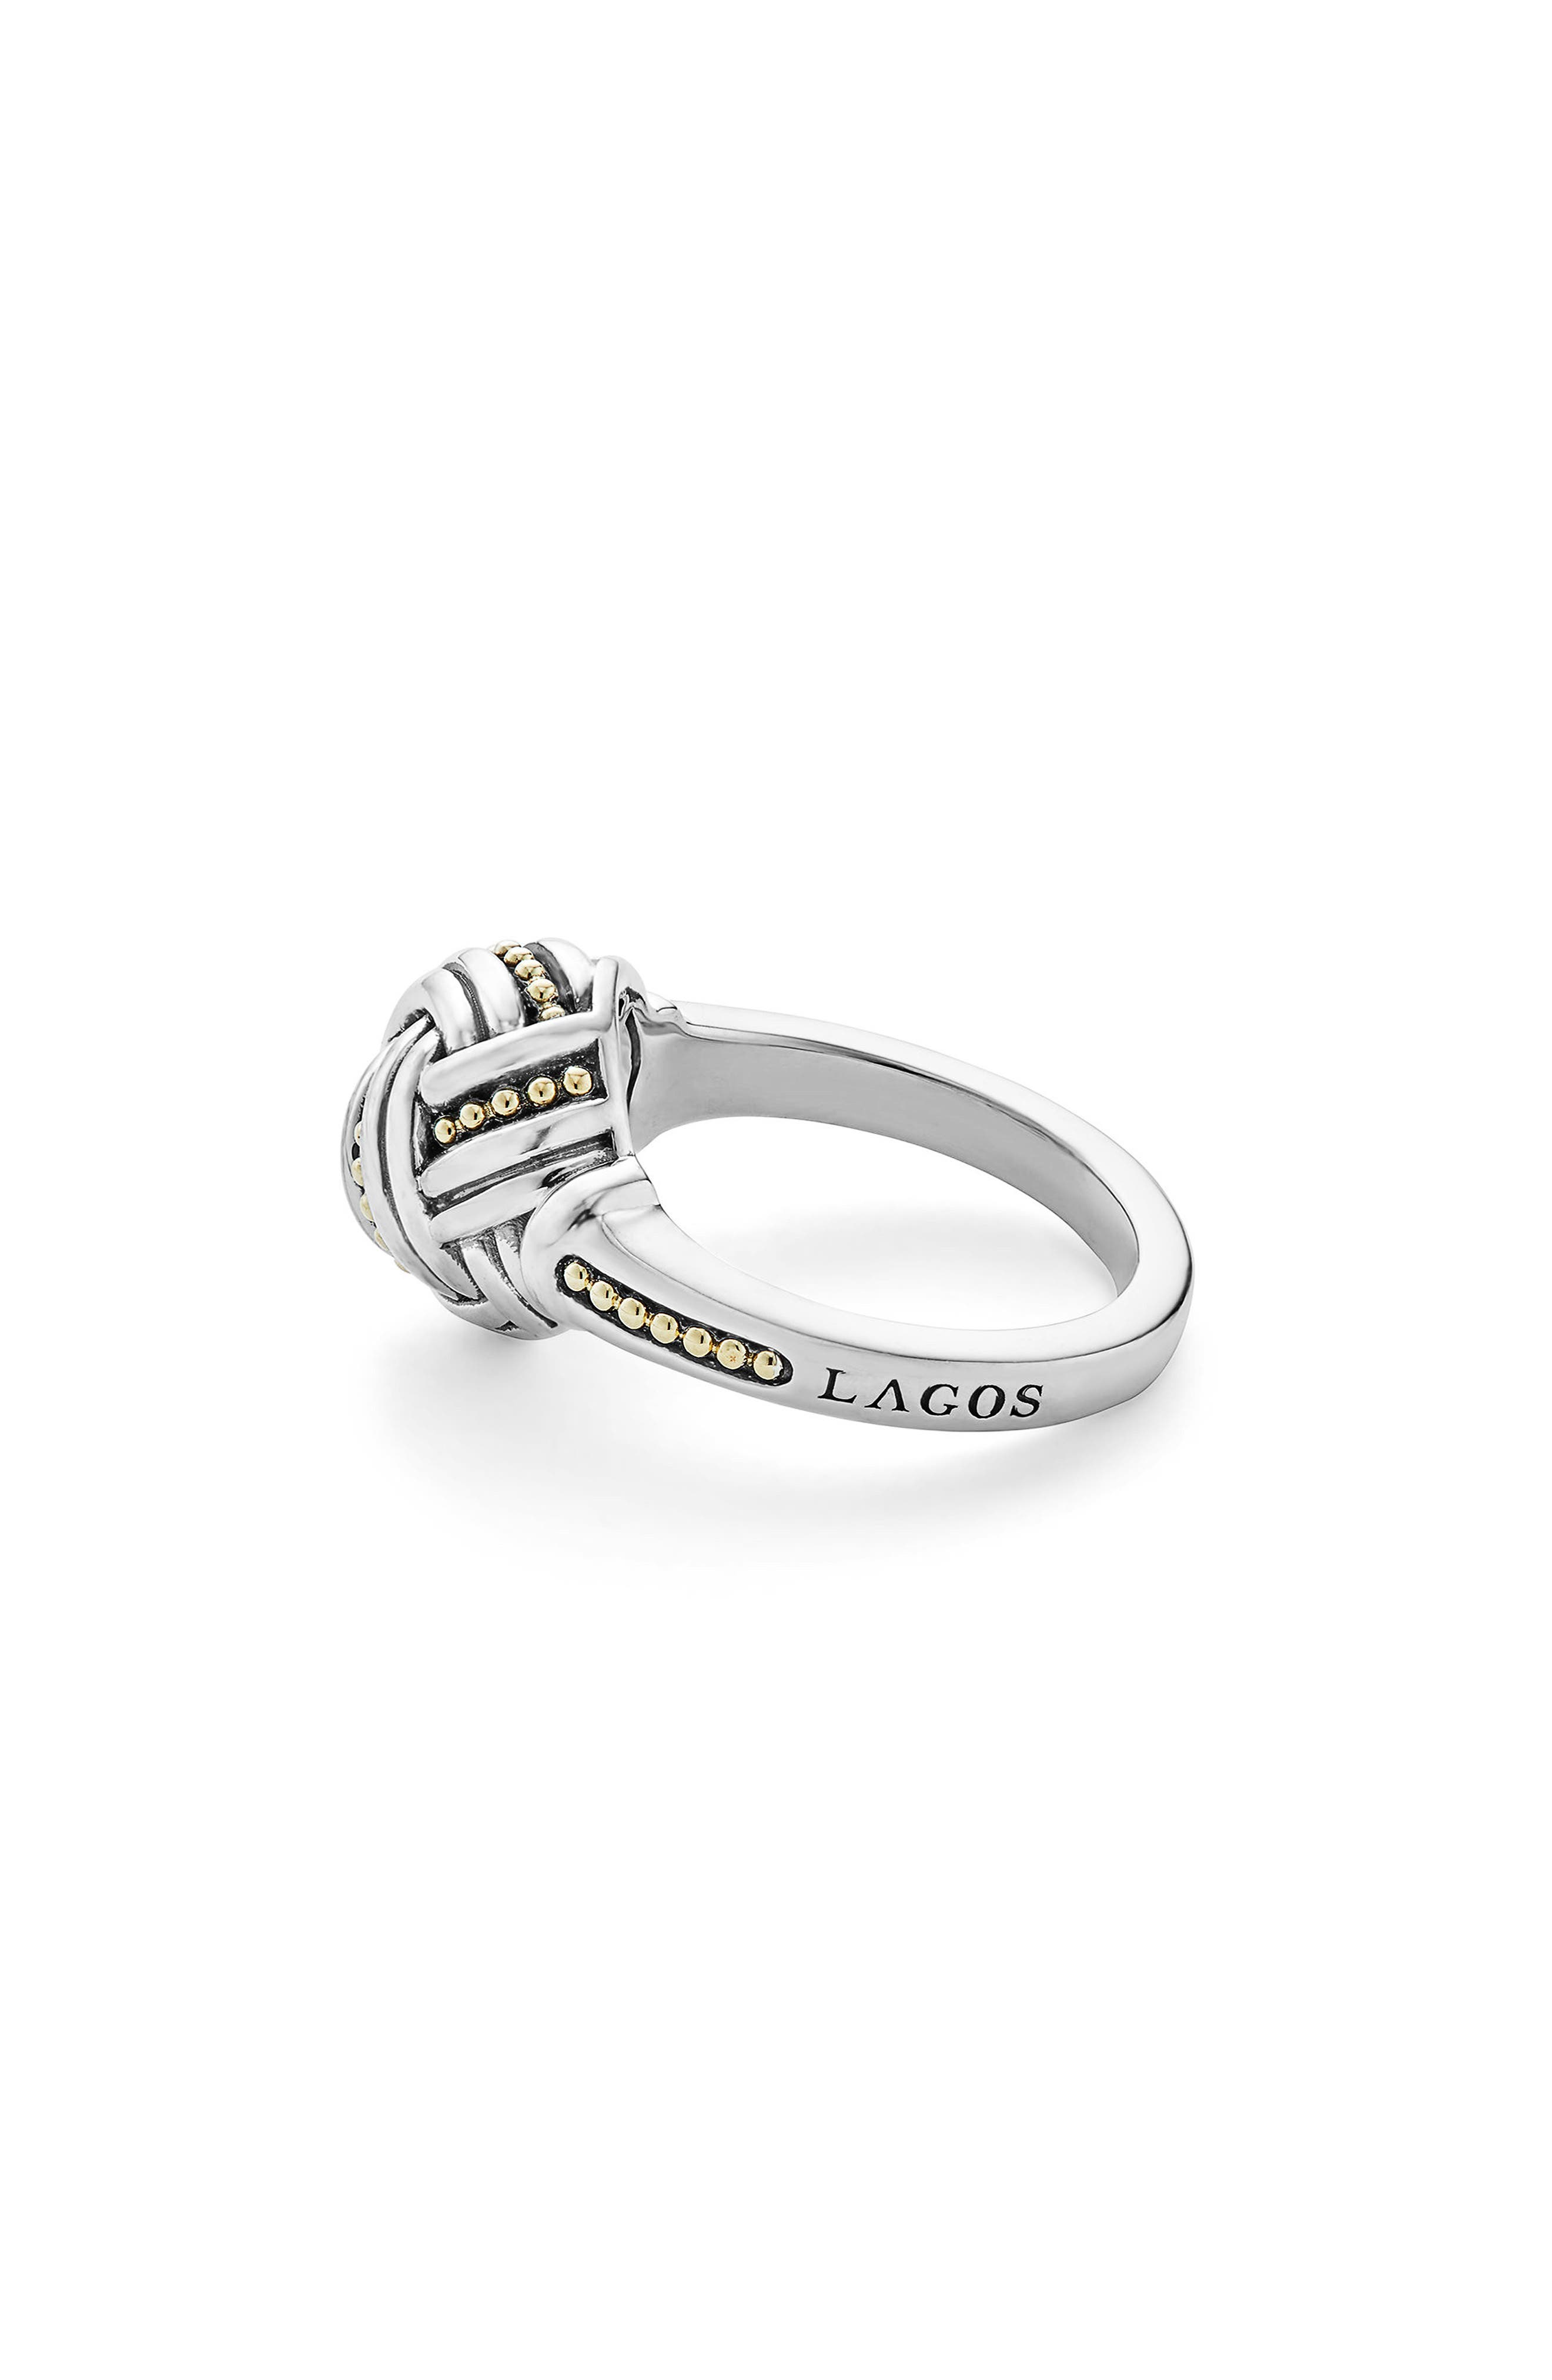 Small Round Ring,                             Alternate thumbnail 4, color,                             SILVER/ GOLD